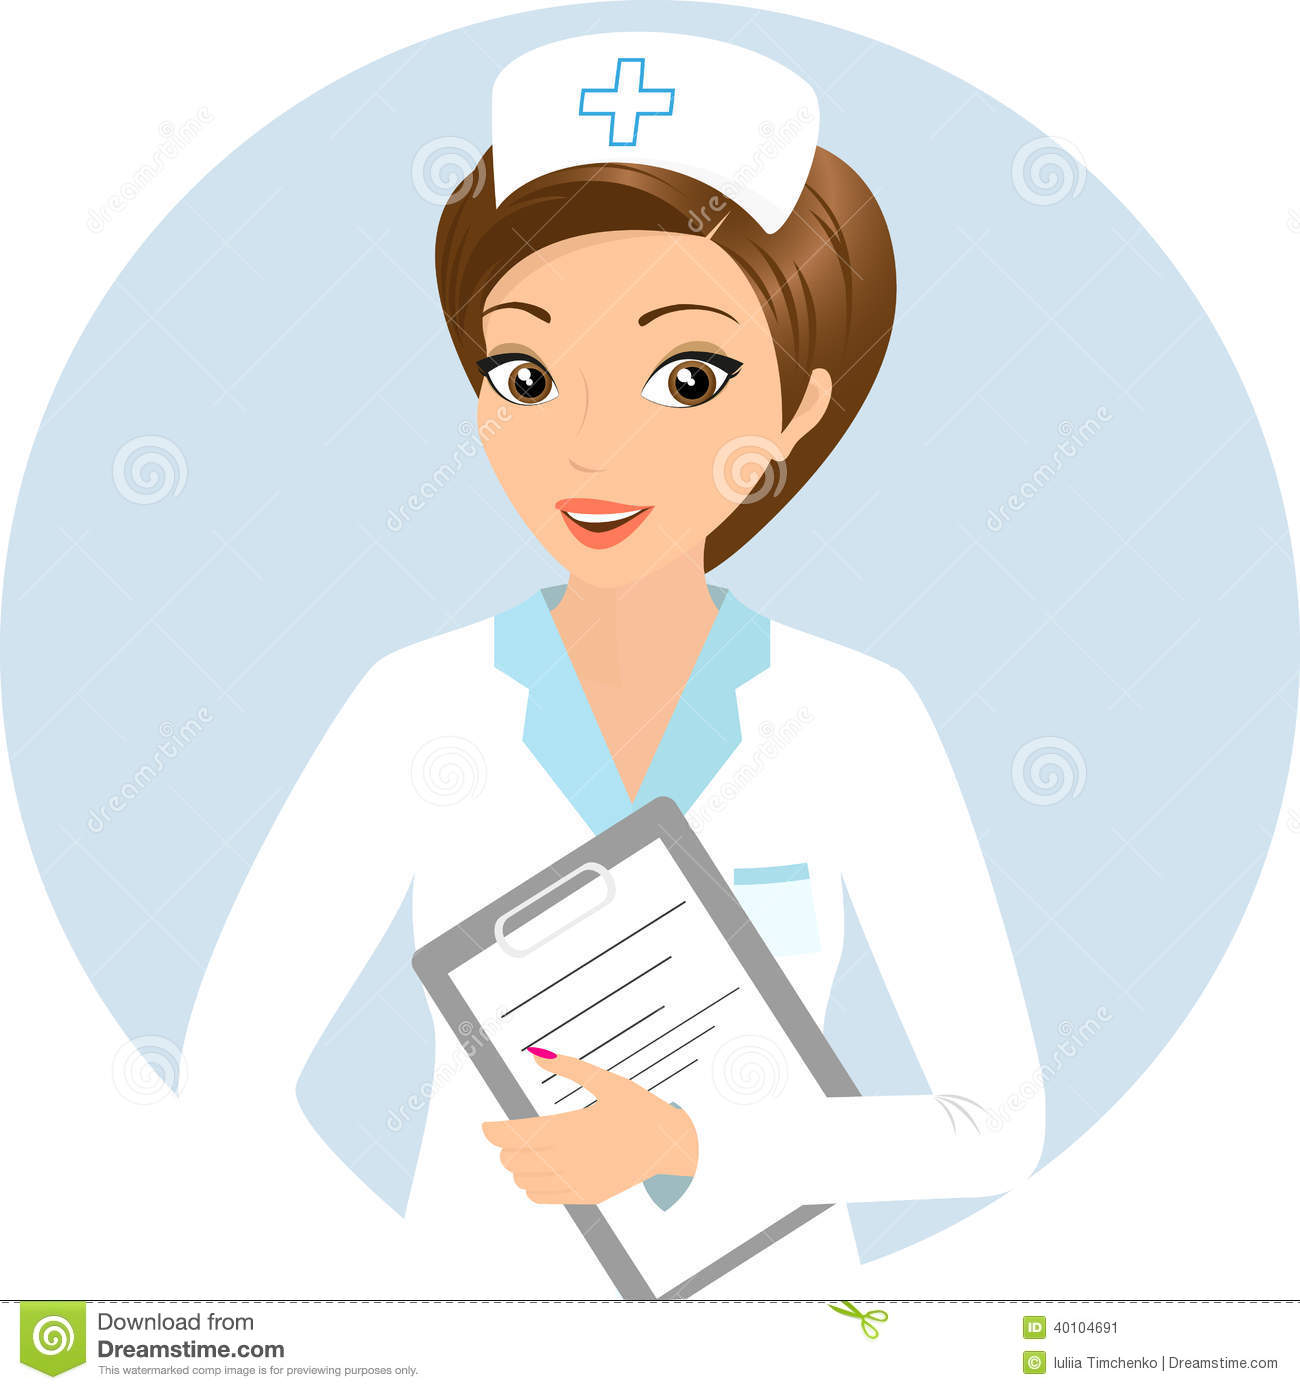 KANIKA'S NURSING ACADEMY, best staff nurse coaching in haryana, best nursing institute in haryana, best post bsc nursing entrance coaching in haryana, best b.sc nursing entrance coaching in haryana, m.sc nursing entrance